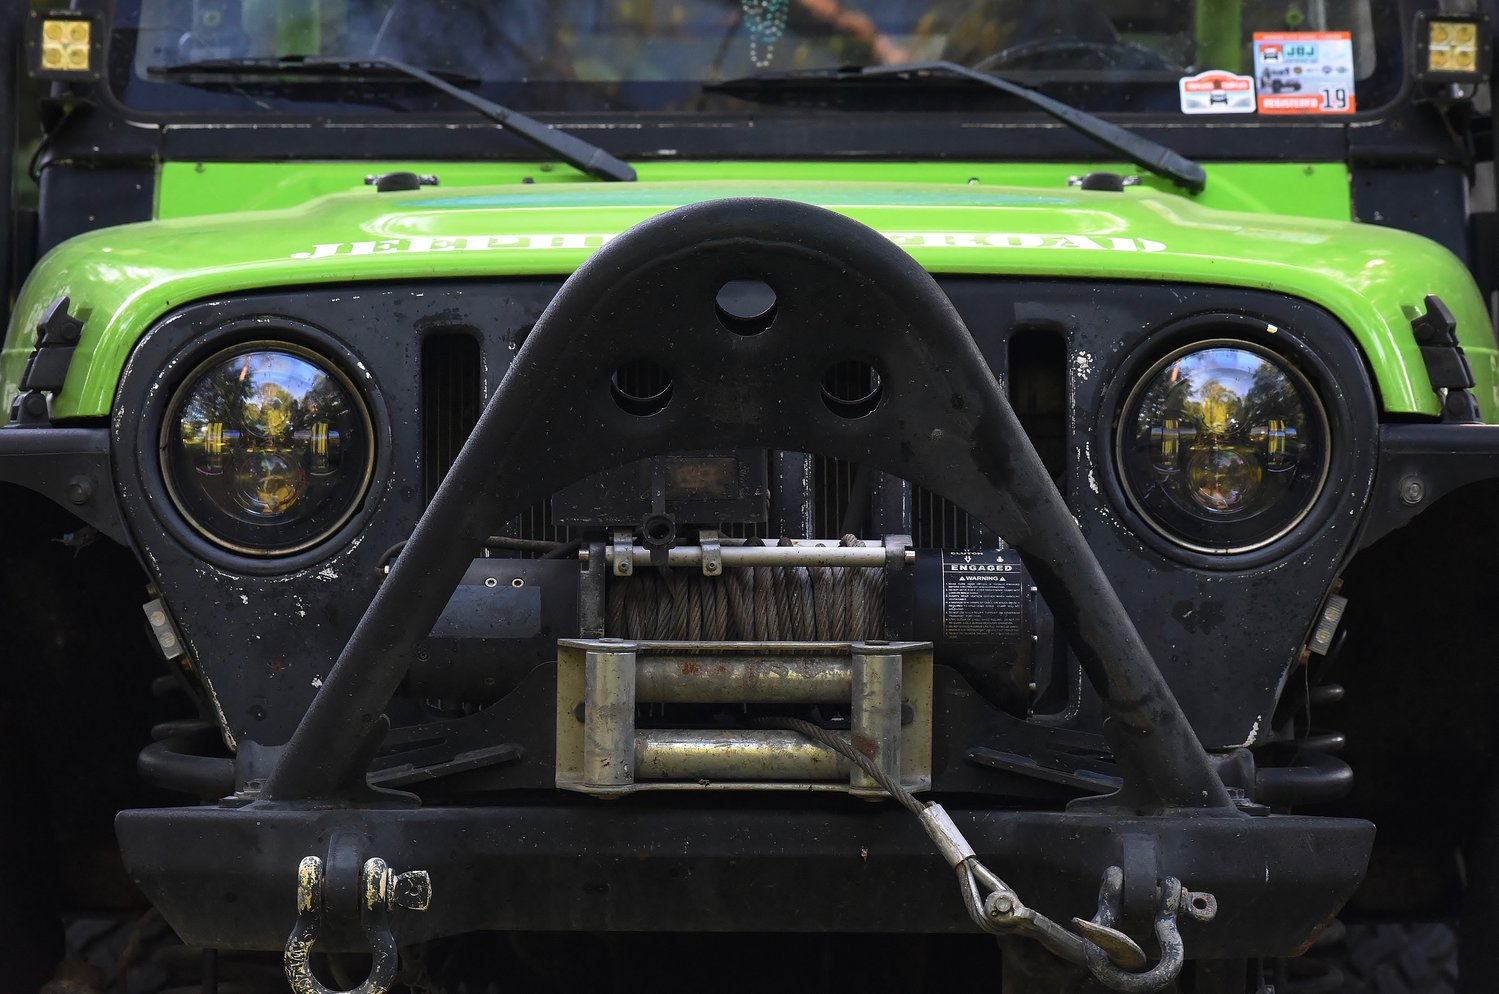 Bright paint jobs and accessories, such as a winch, are not uncommon on Jeeps. Members of Bartow Krawlers are joining other off-road enthusiasts in organizing the inaugural Euharlee 4-Wheel Drive Show Saturday.